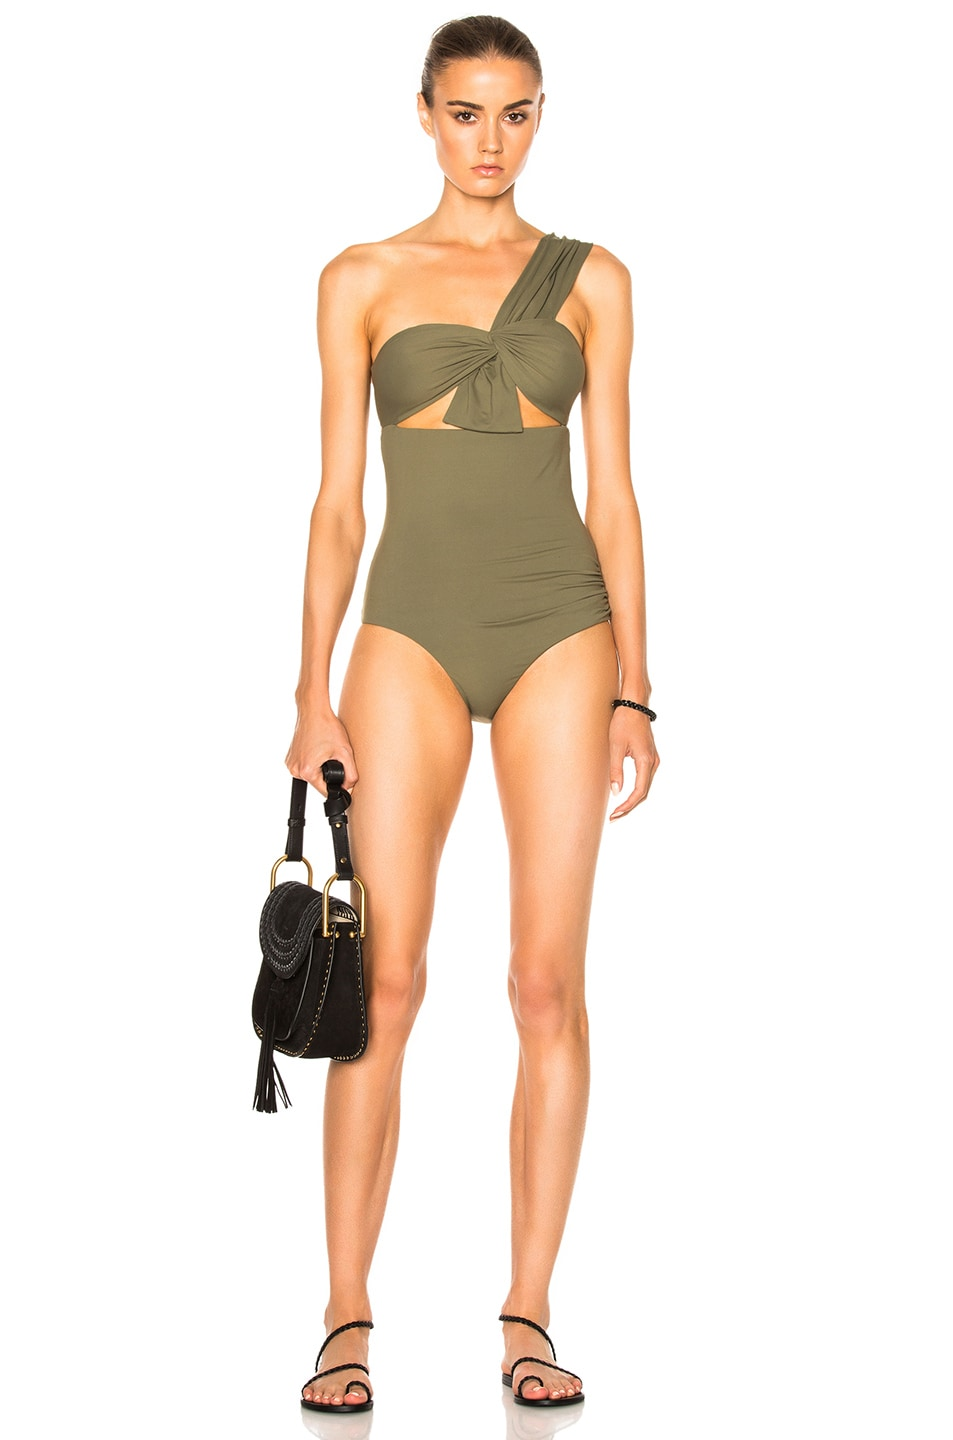 952b4102fde96 Image 1 of Marysia Swim Venice Swimsuit in Olive